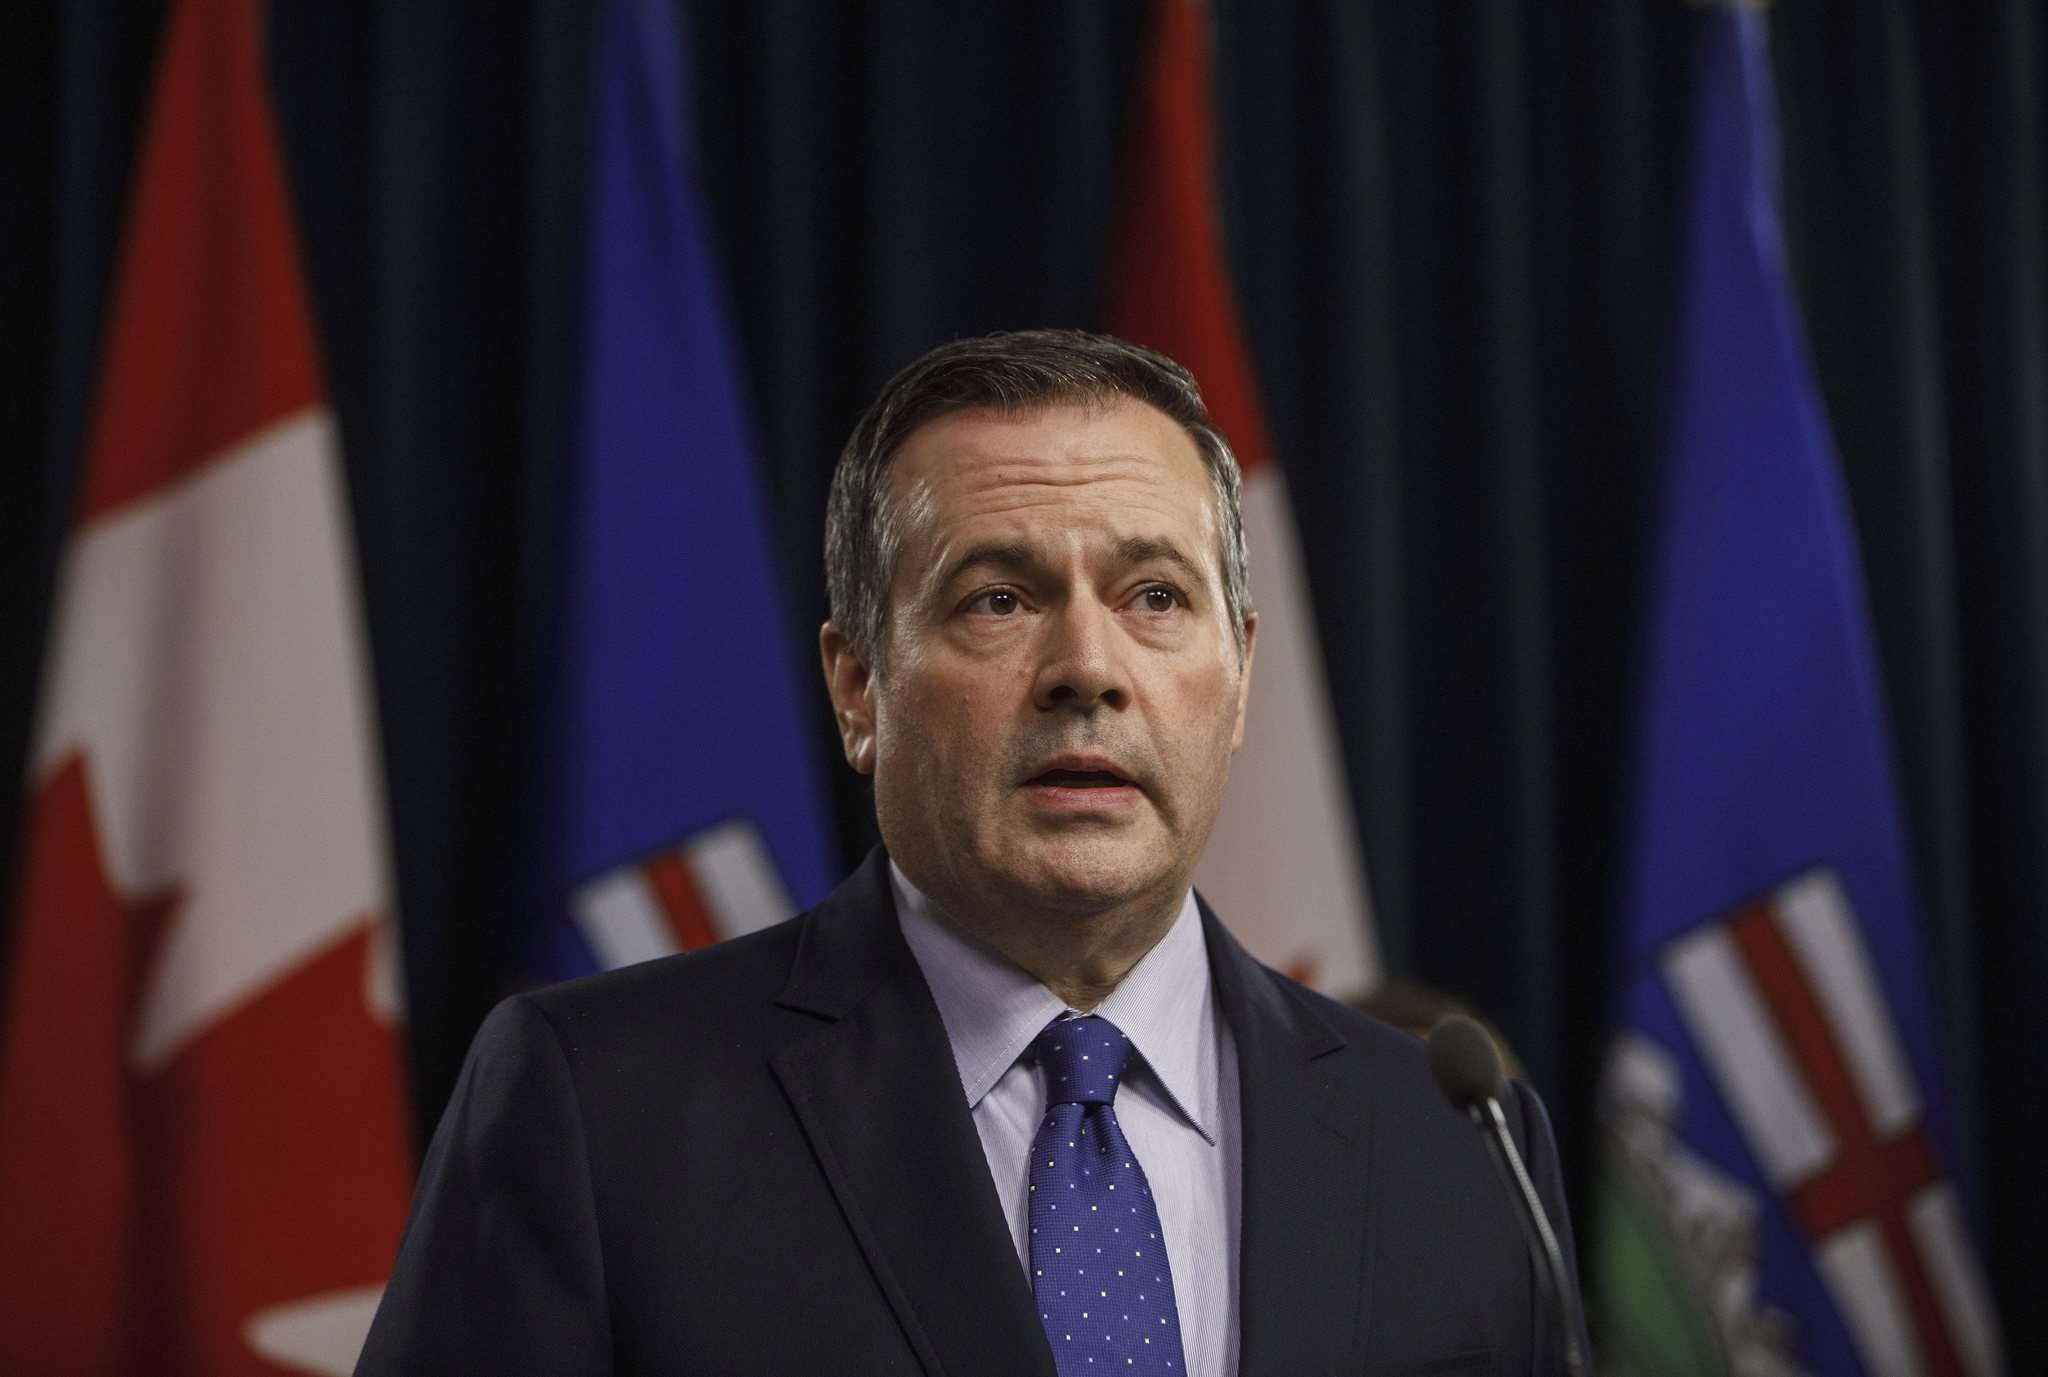 Alberta Premier Jason Kenney believes he is dealing with a conspiracy of Hollywood celebrities and California tree-huggers bent on persecuting Alberta and shutting down its oil industry.